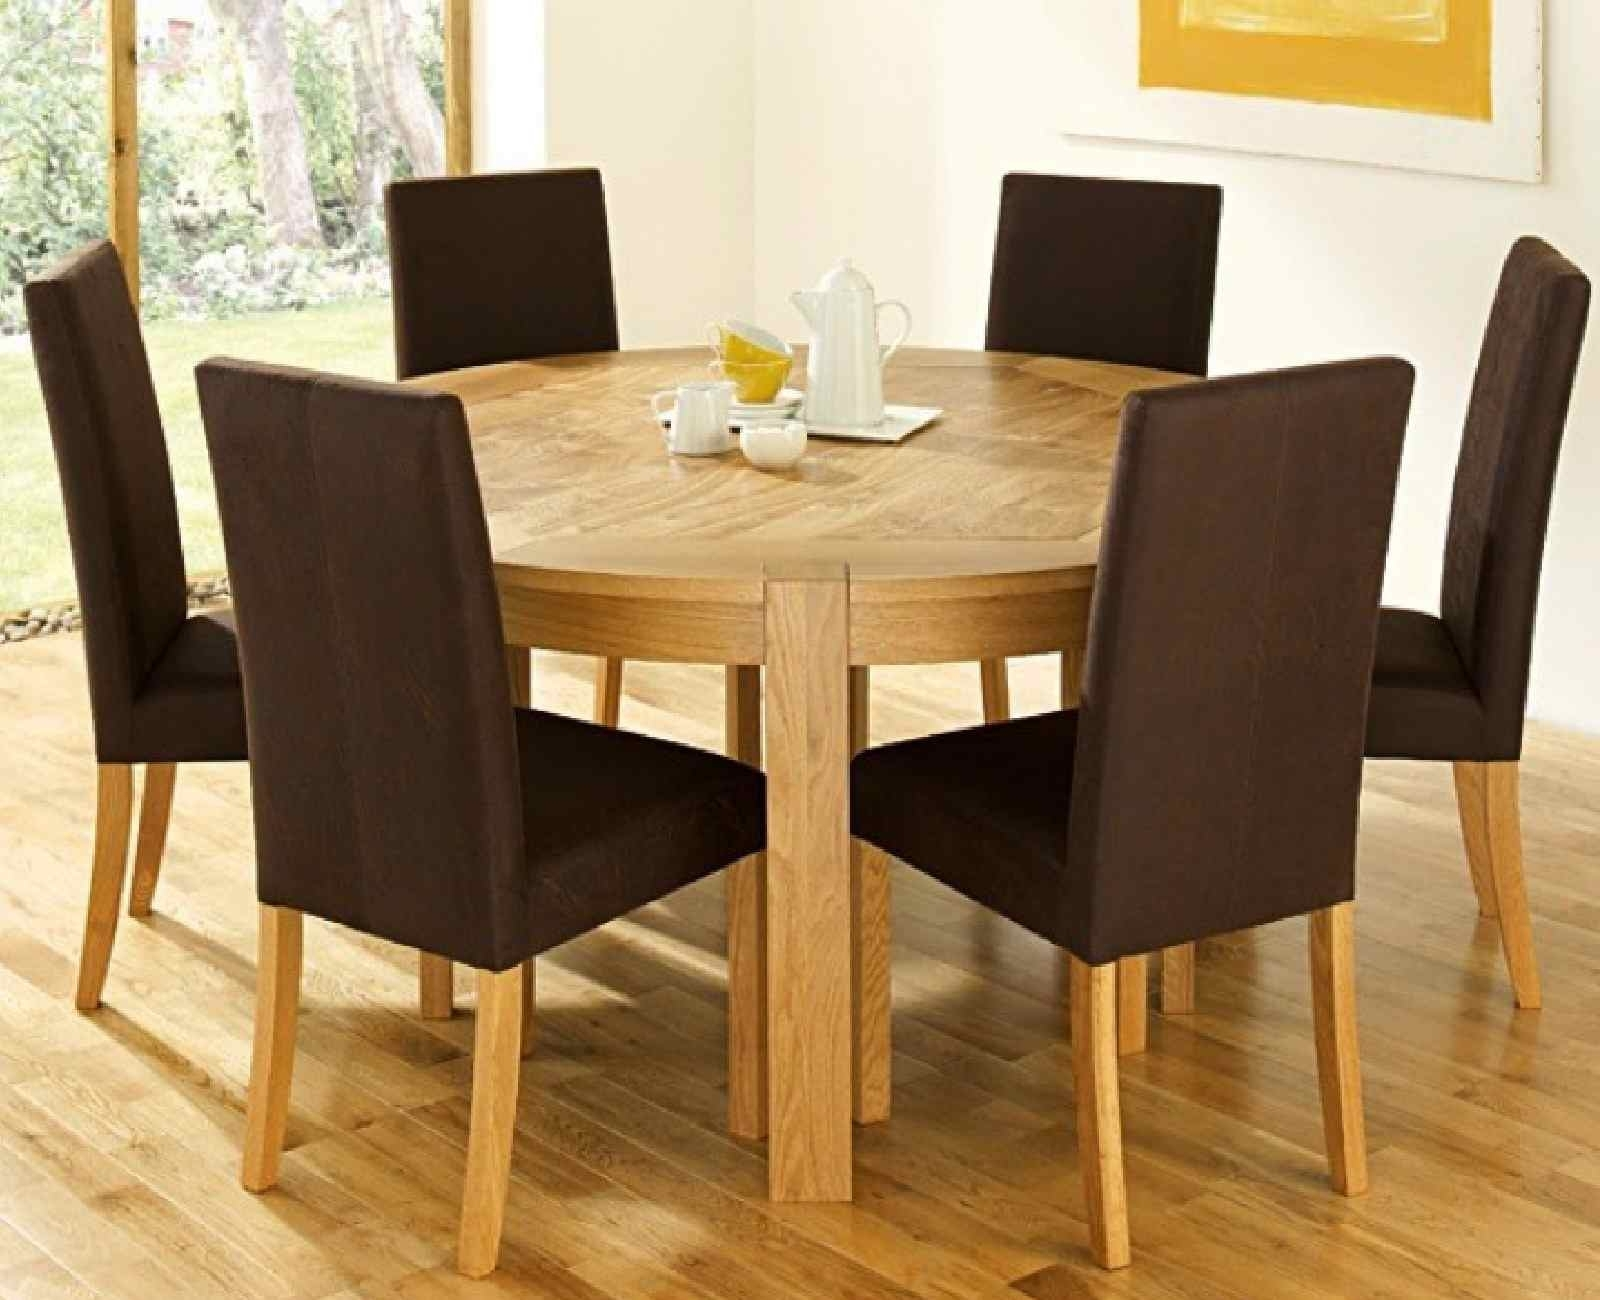 Round Dining Table Set For 6 – Castrophotos Inside Latest Parquet 6 Piece Dining Sets (Image 13 of 20)